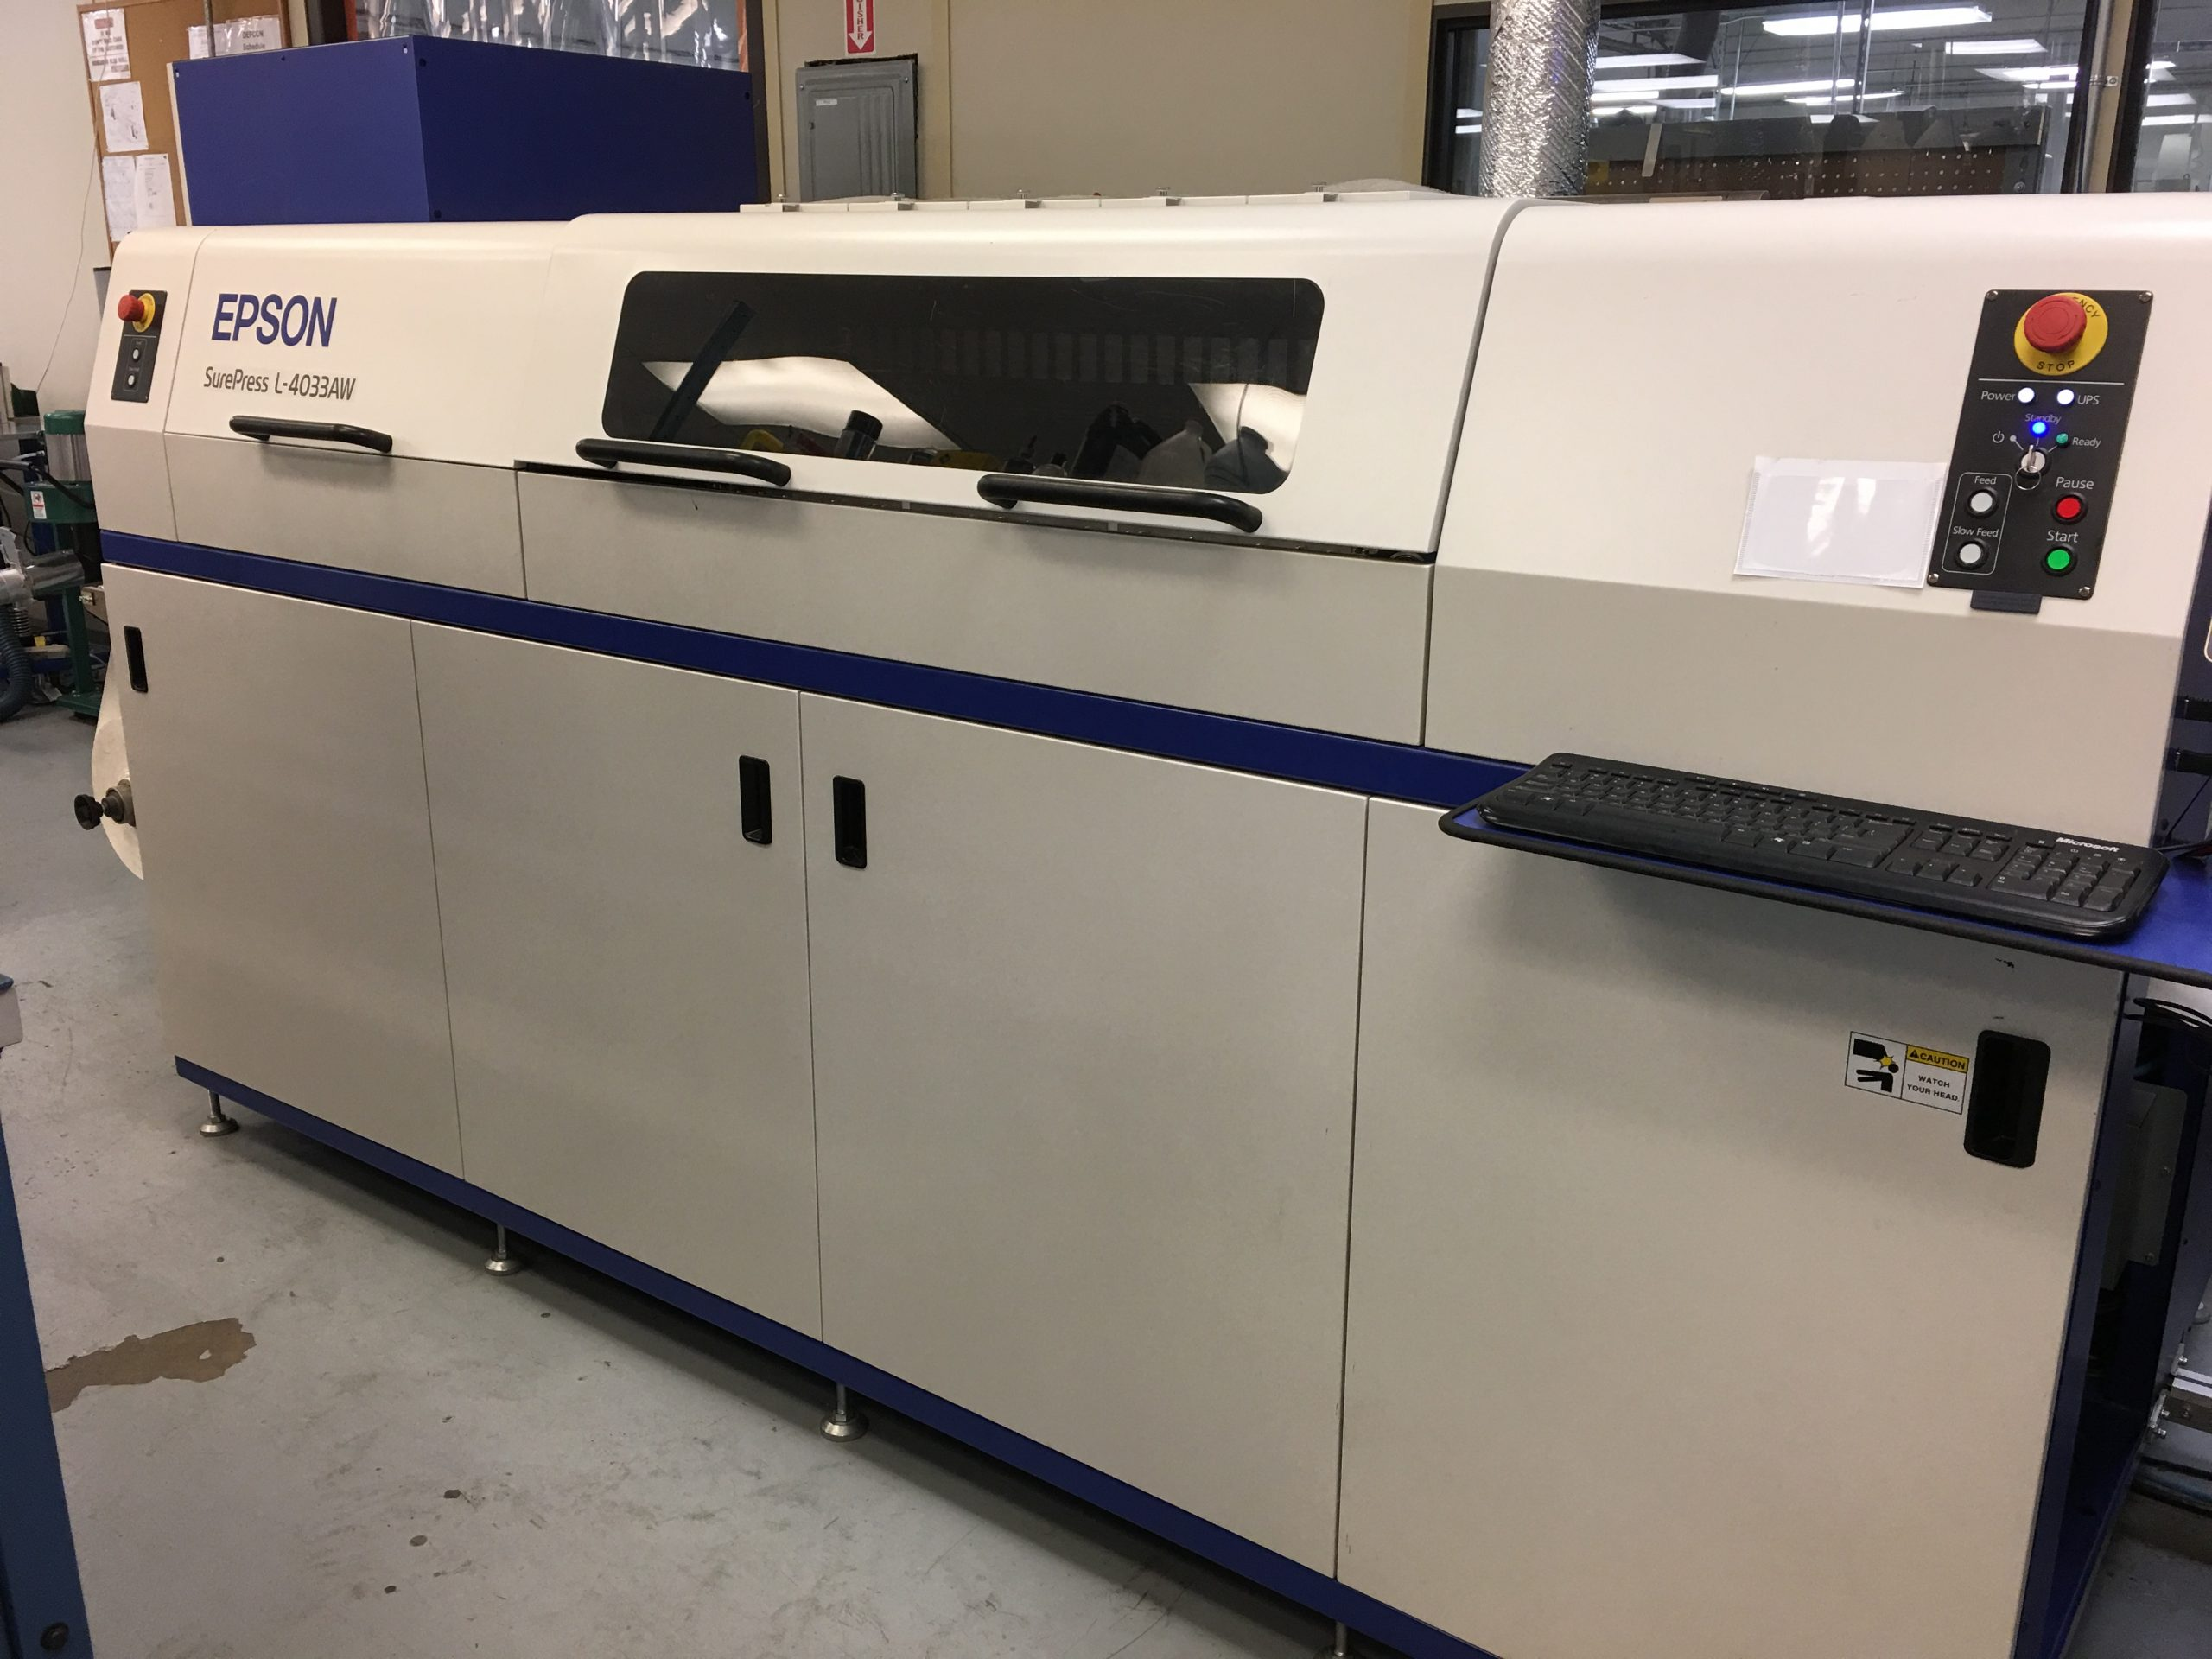 Epson Surepress L-4033AW - Used Flexo Printing Presses and Used Flexographic Equipment-3